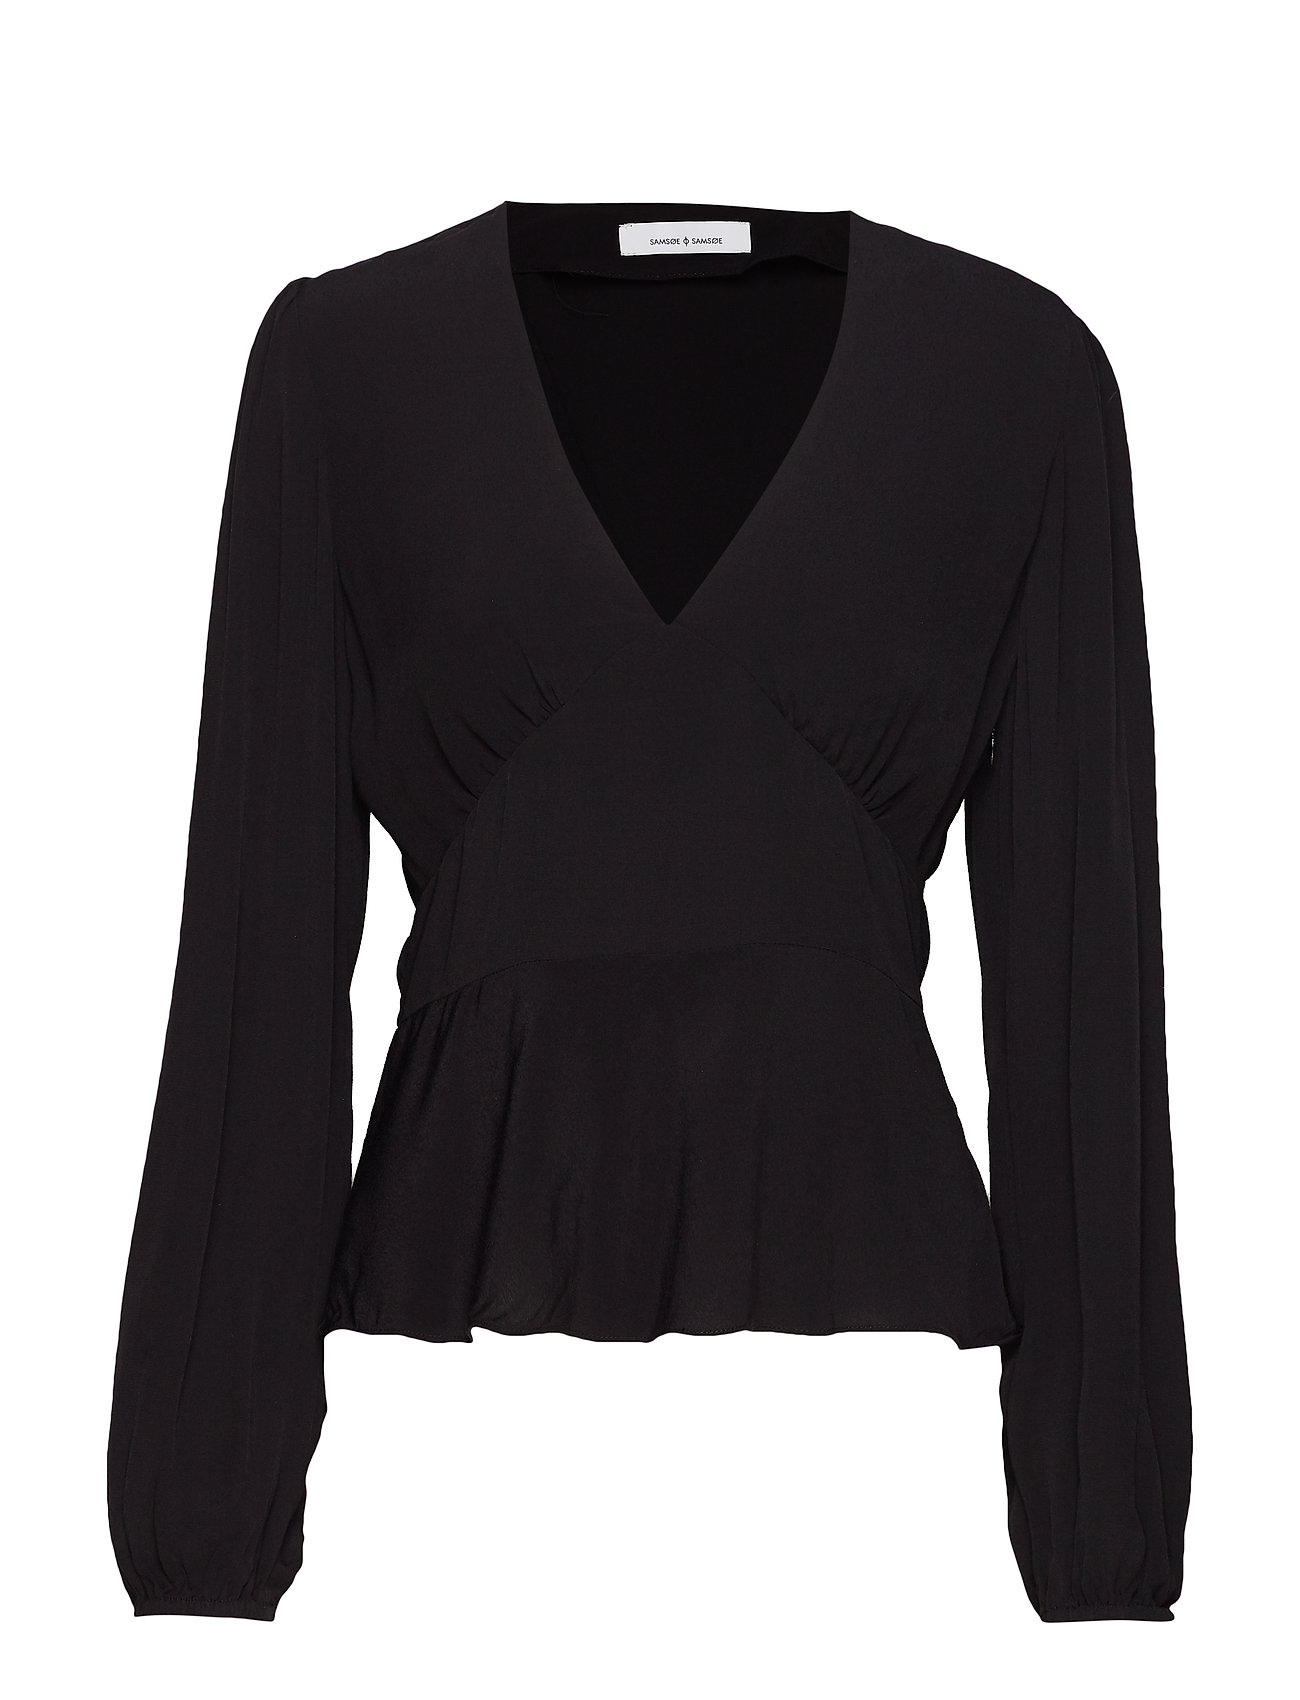 Samsøe & Samsøe Cindy blouse 10056 - BLACK